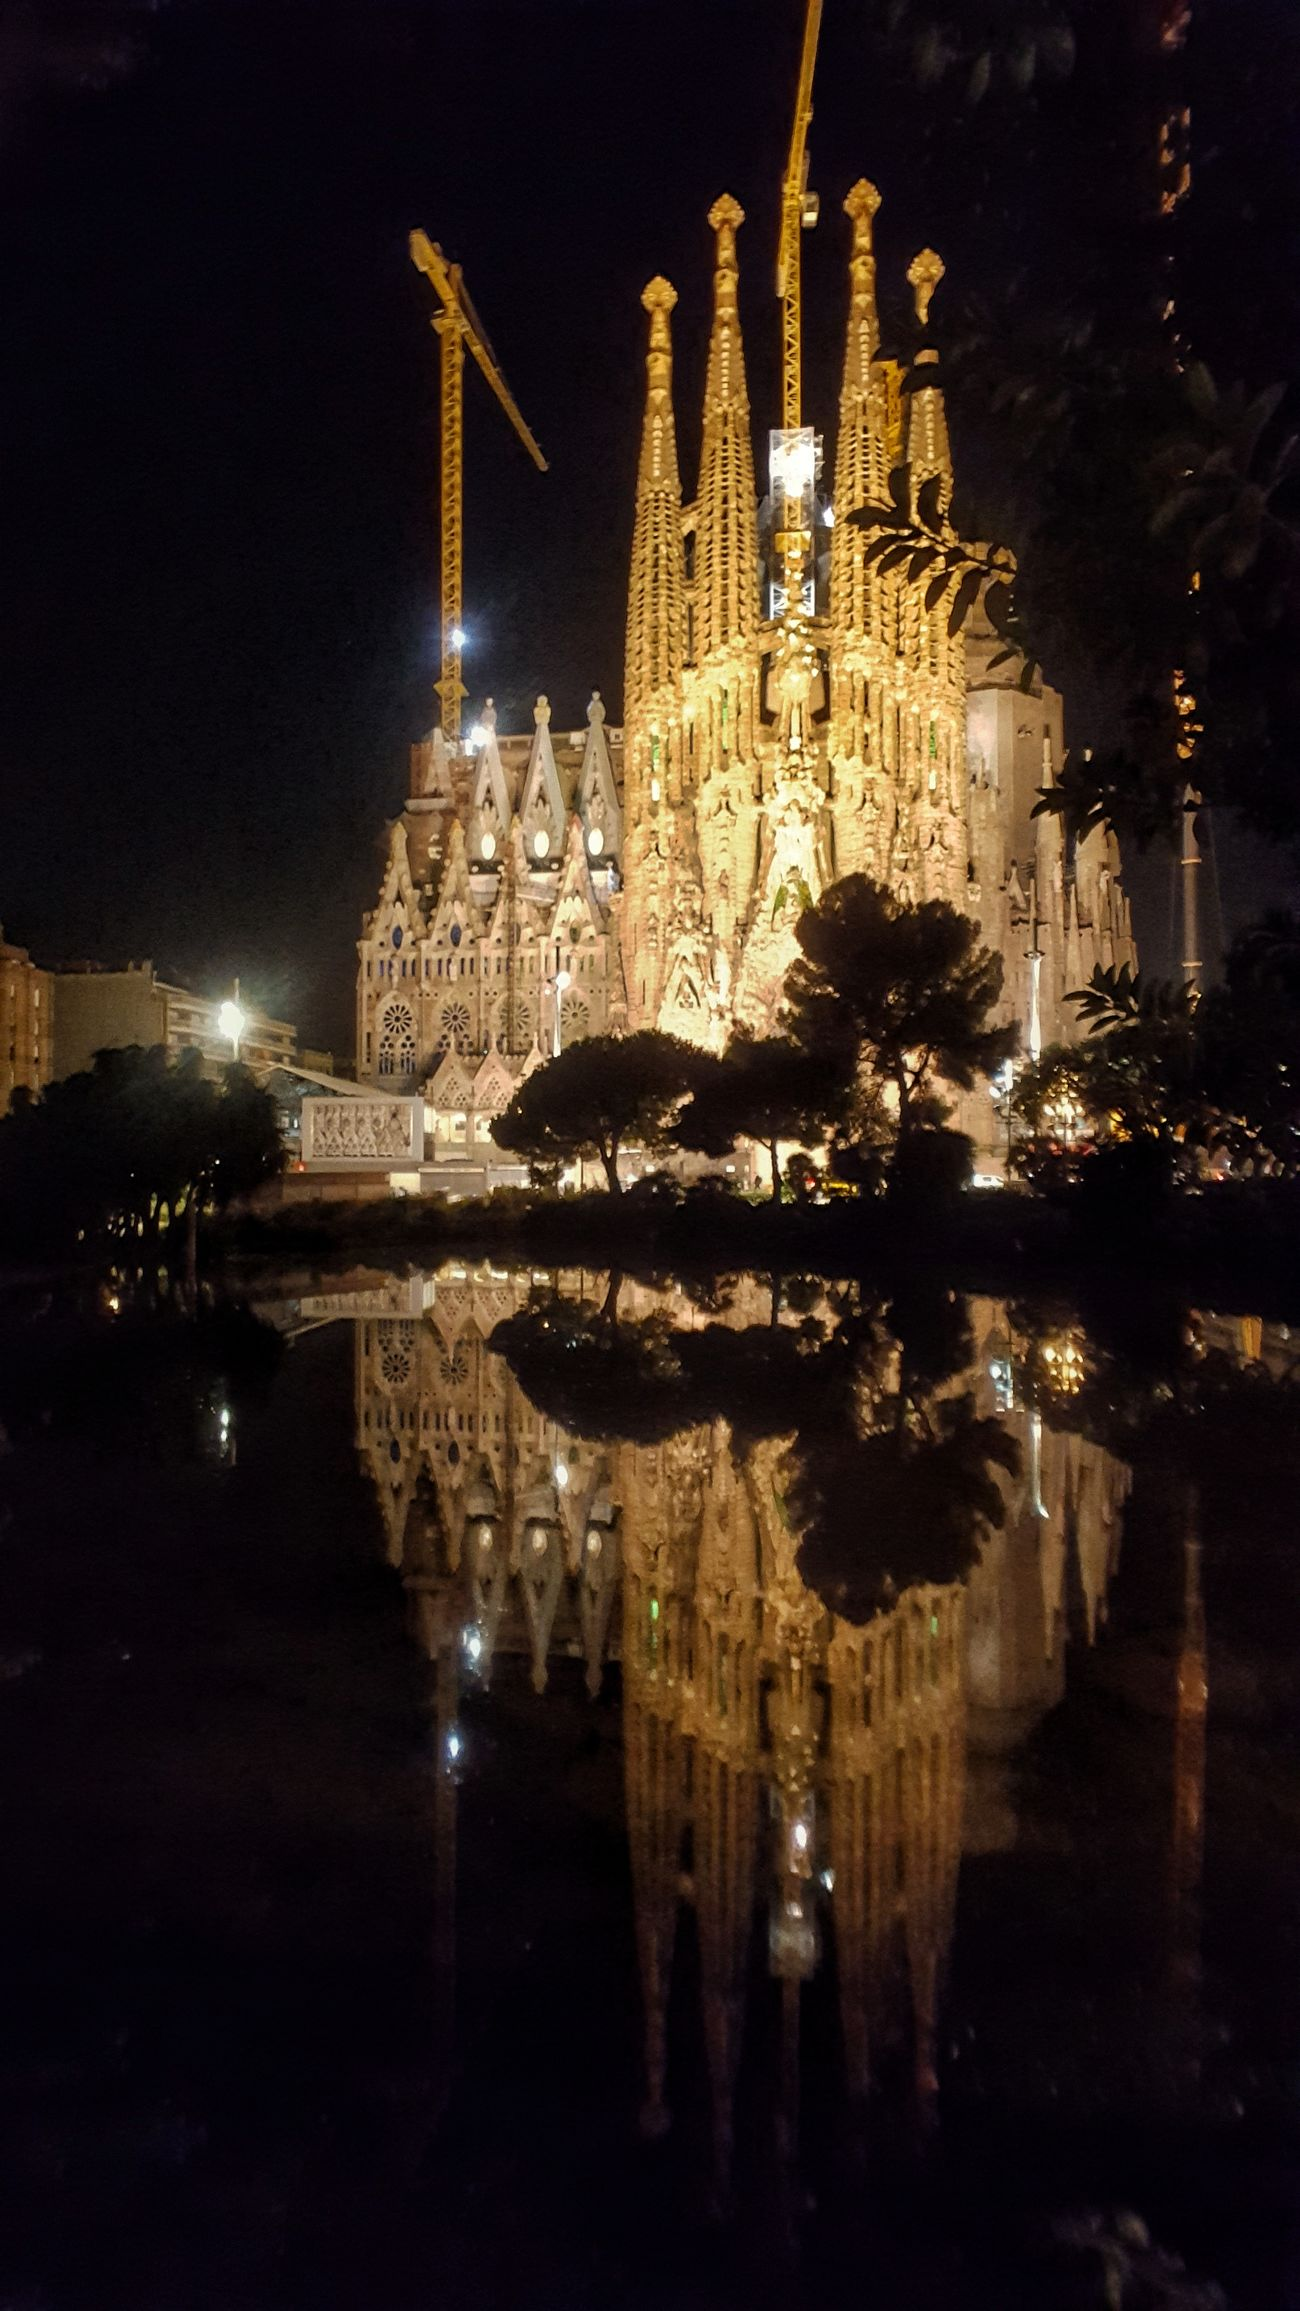 Hoy he vuelto otra vez....🎶🎶🎶 Night Reflection Illuminated Water City Architecture Built Structure Night Photography Nightphotography Night Lights Capture The Moment Reflejos From My Point Of View Templo Religion Basilica Reflections Architecture Religious Place